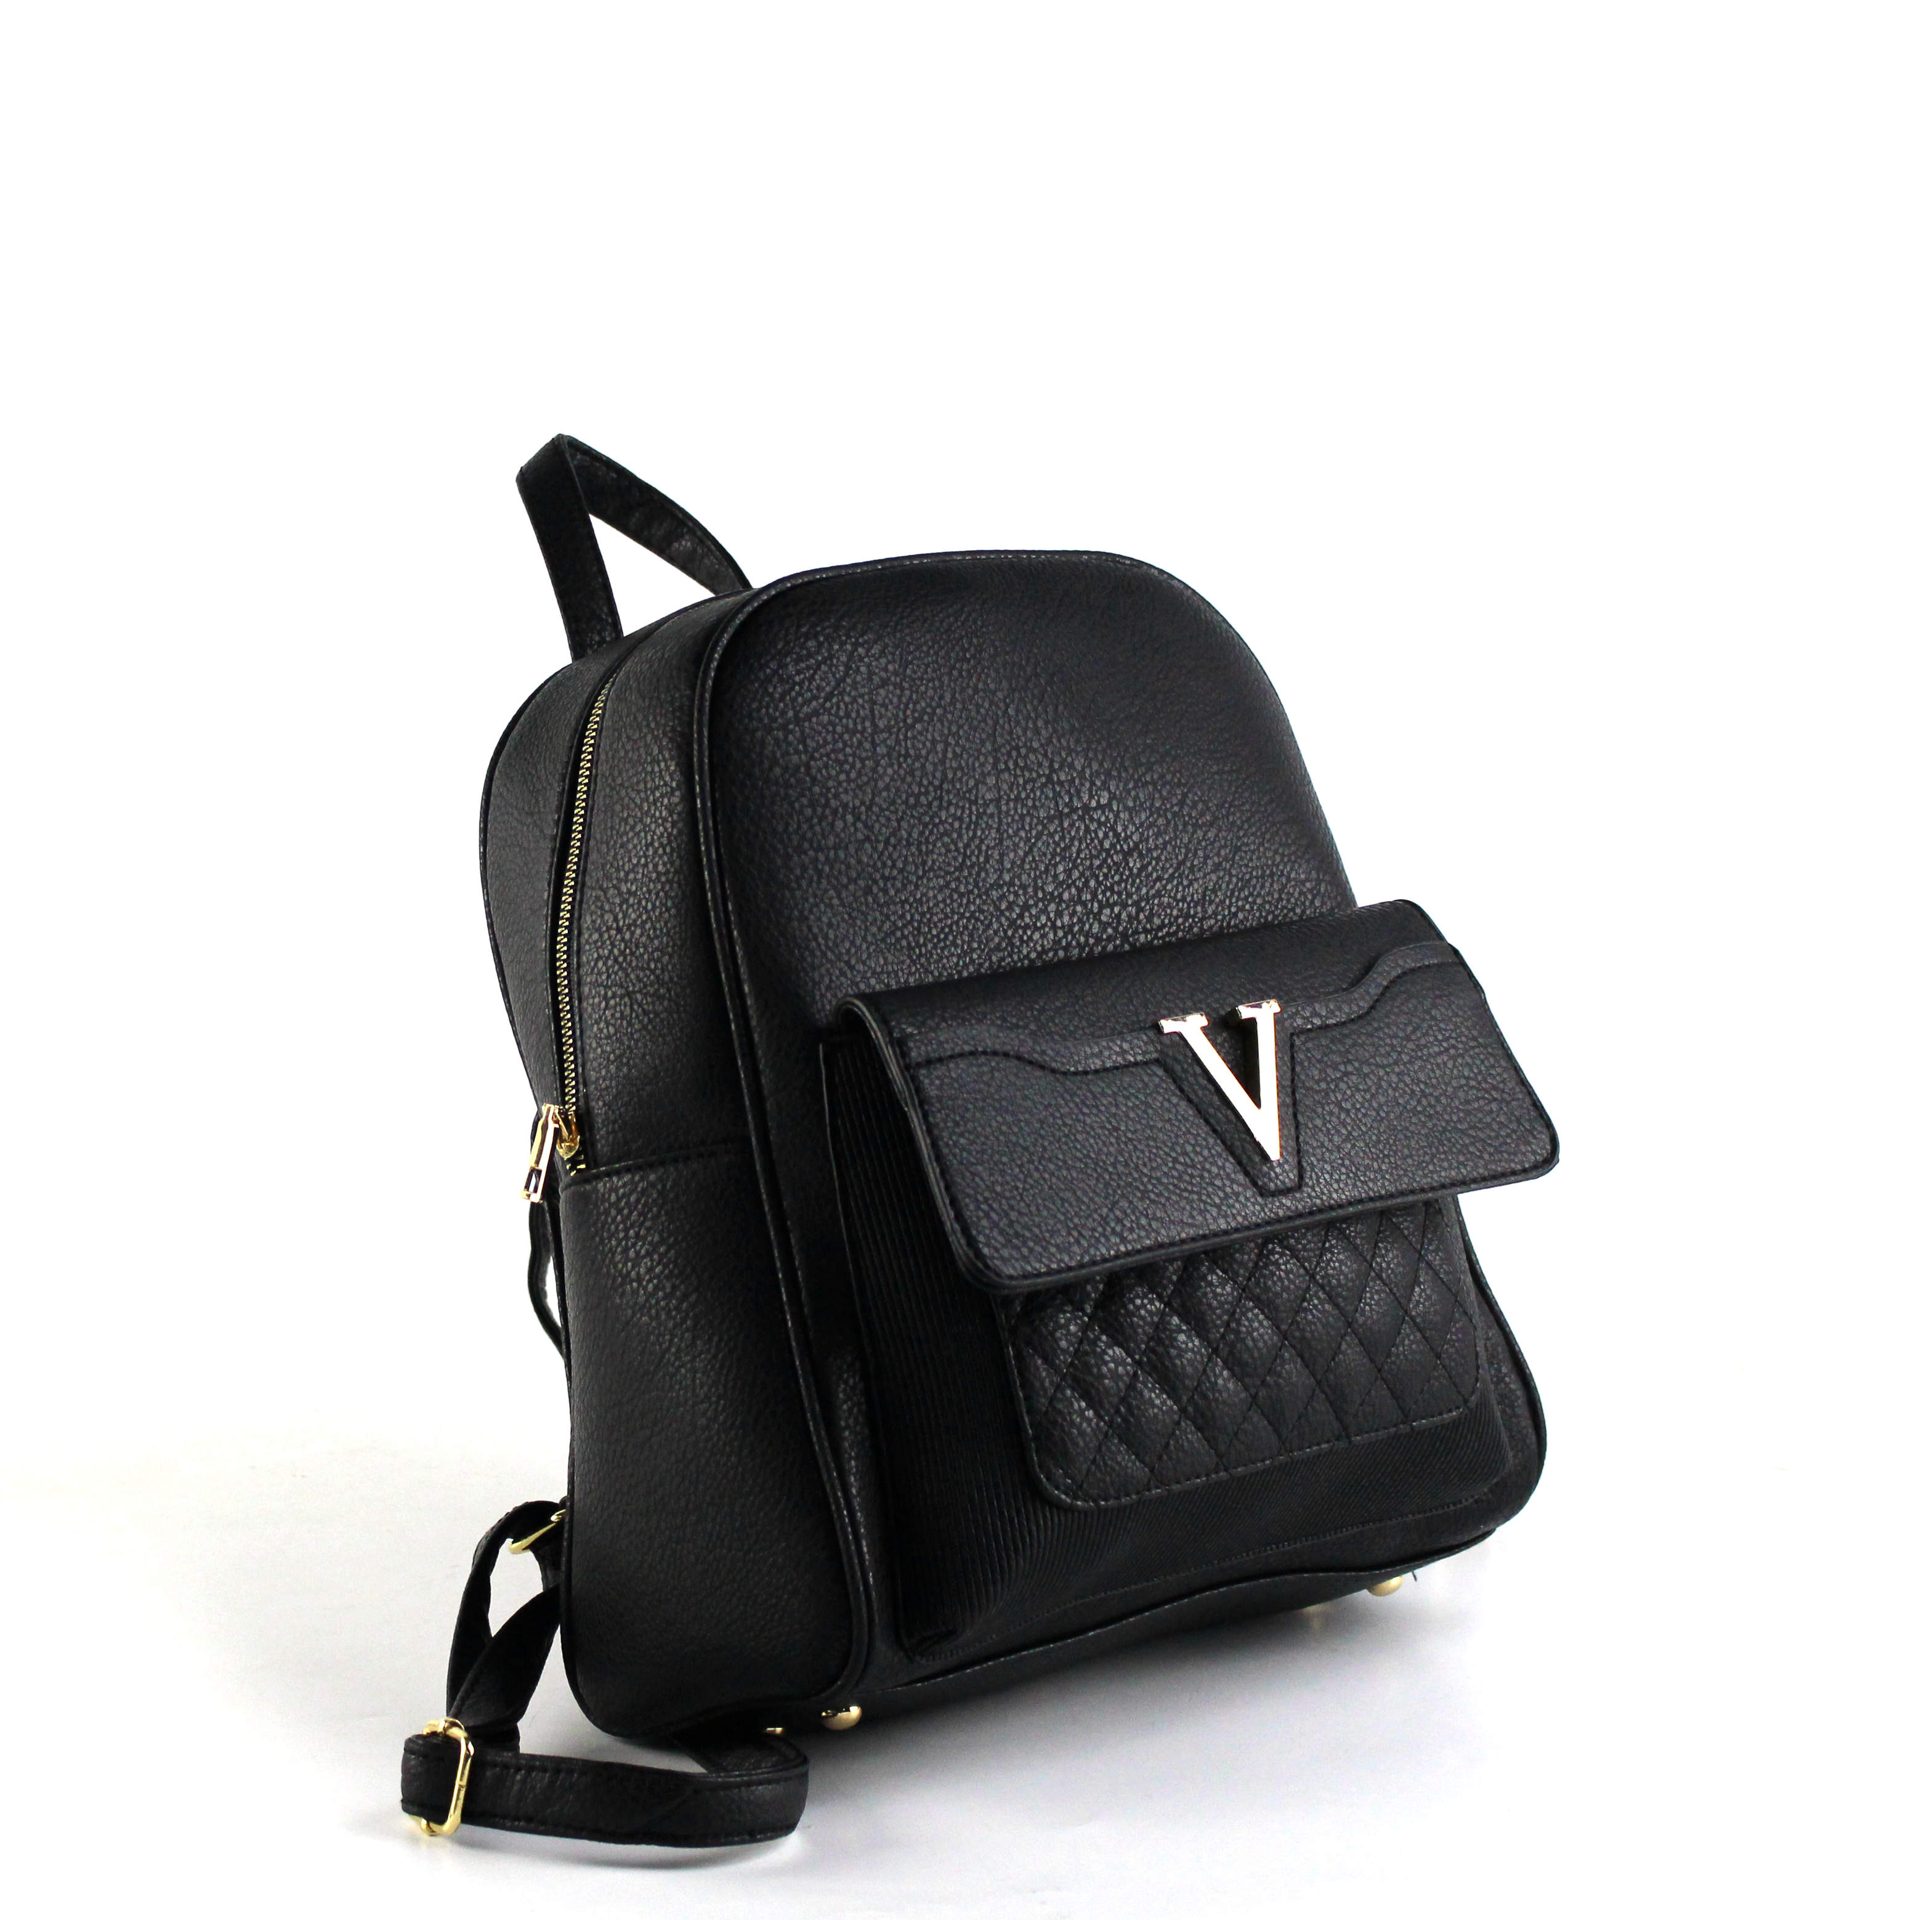 7801 - Wholesale Fashion Backpack with Front Flip Pocket